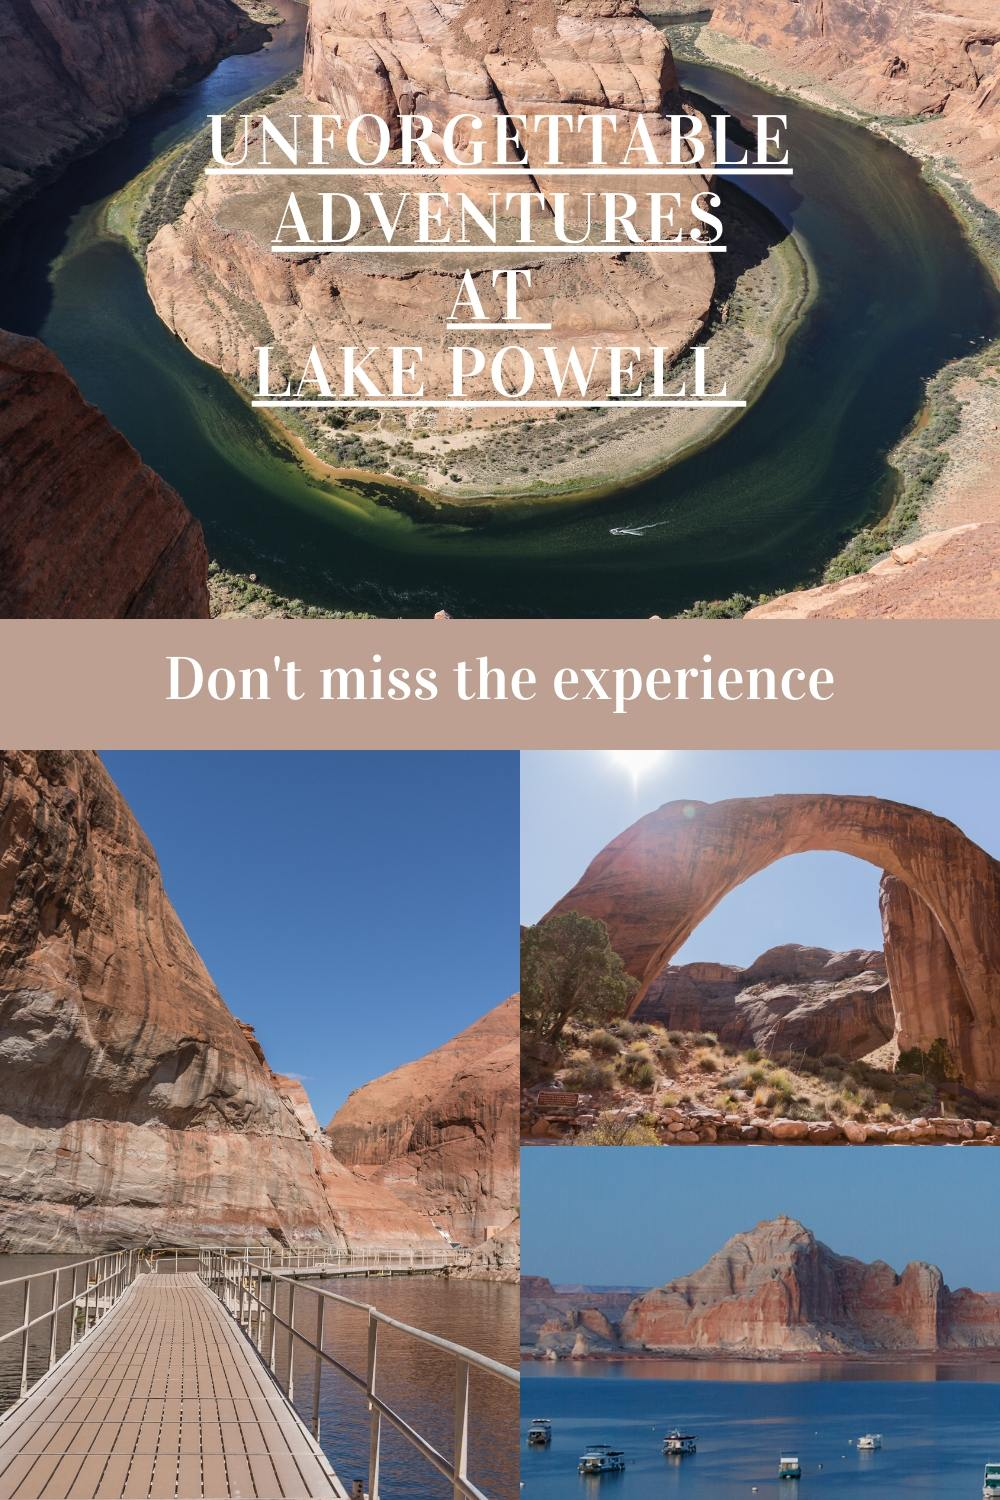 Unforgettable adventures - top things to do at Lake Powell